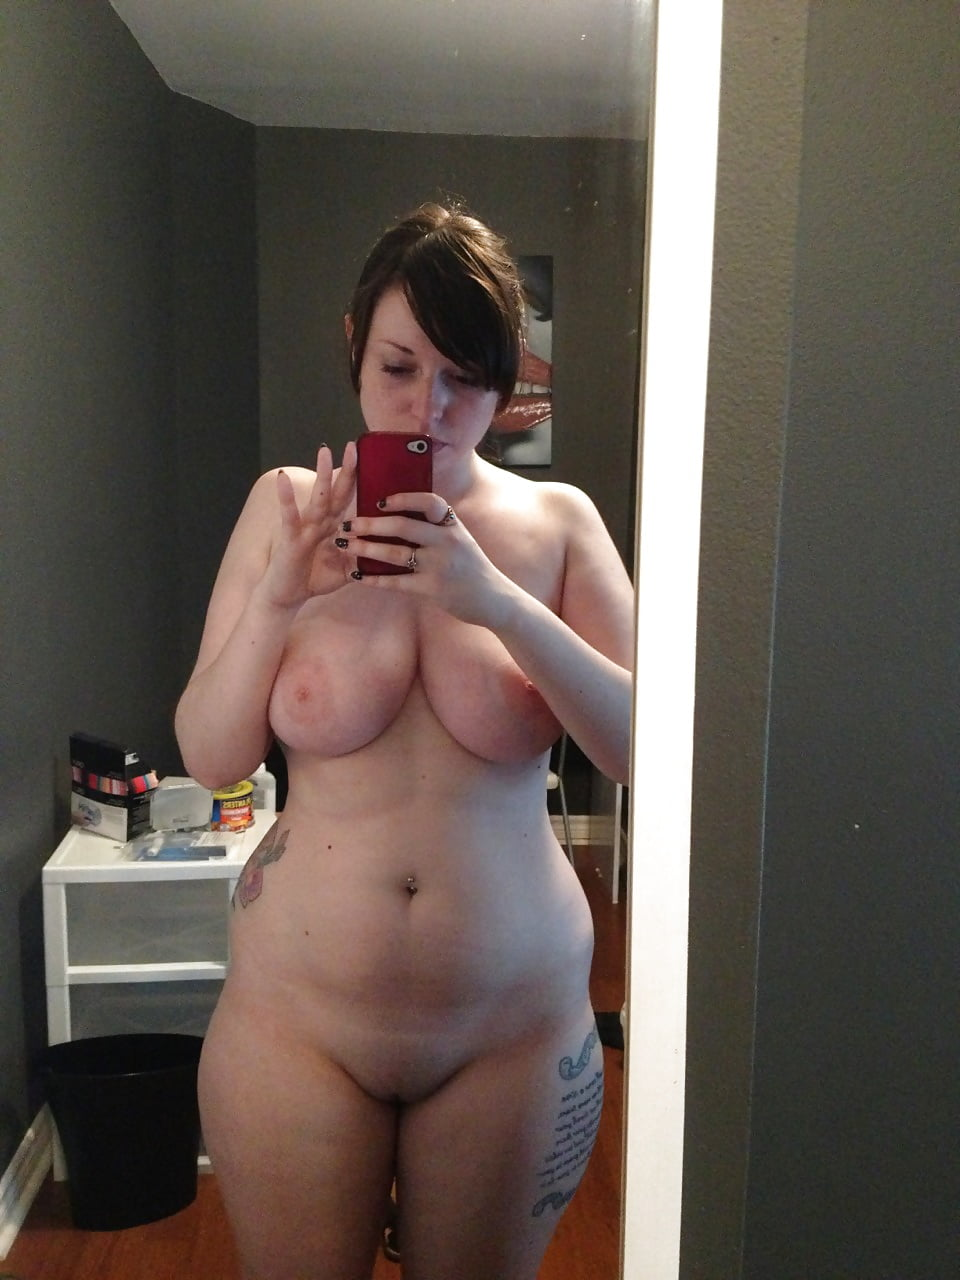 Nude mature bbw self pics, erotic nude party